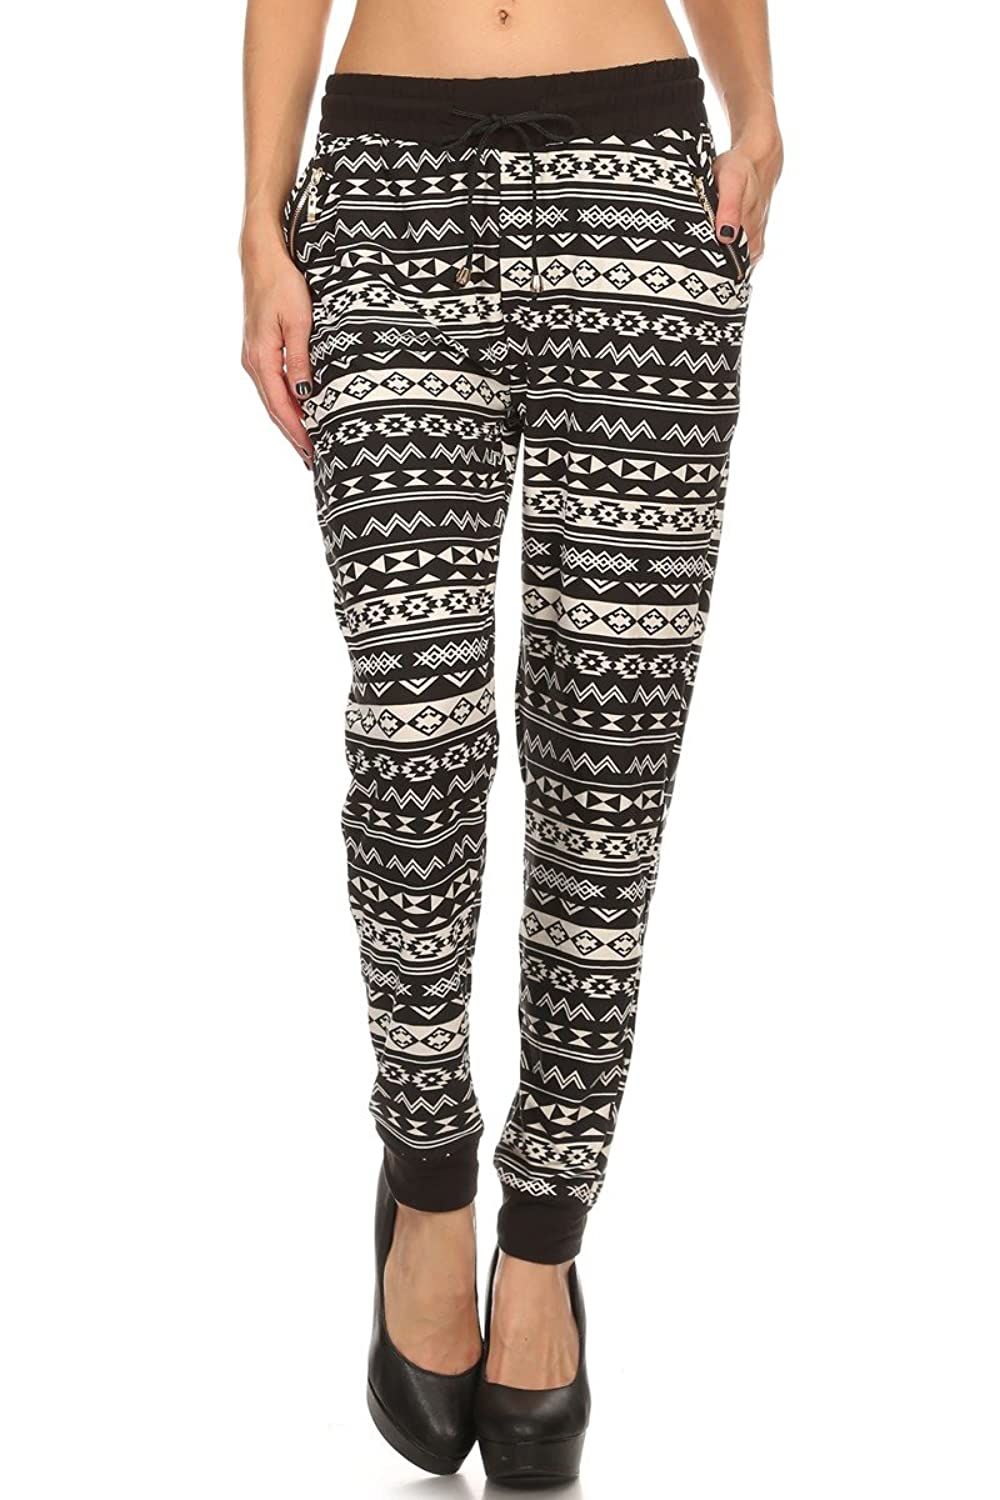 LA12ST Women's Black Aztec Shapes Printed Drawstring Onesize JoggerPants